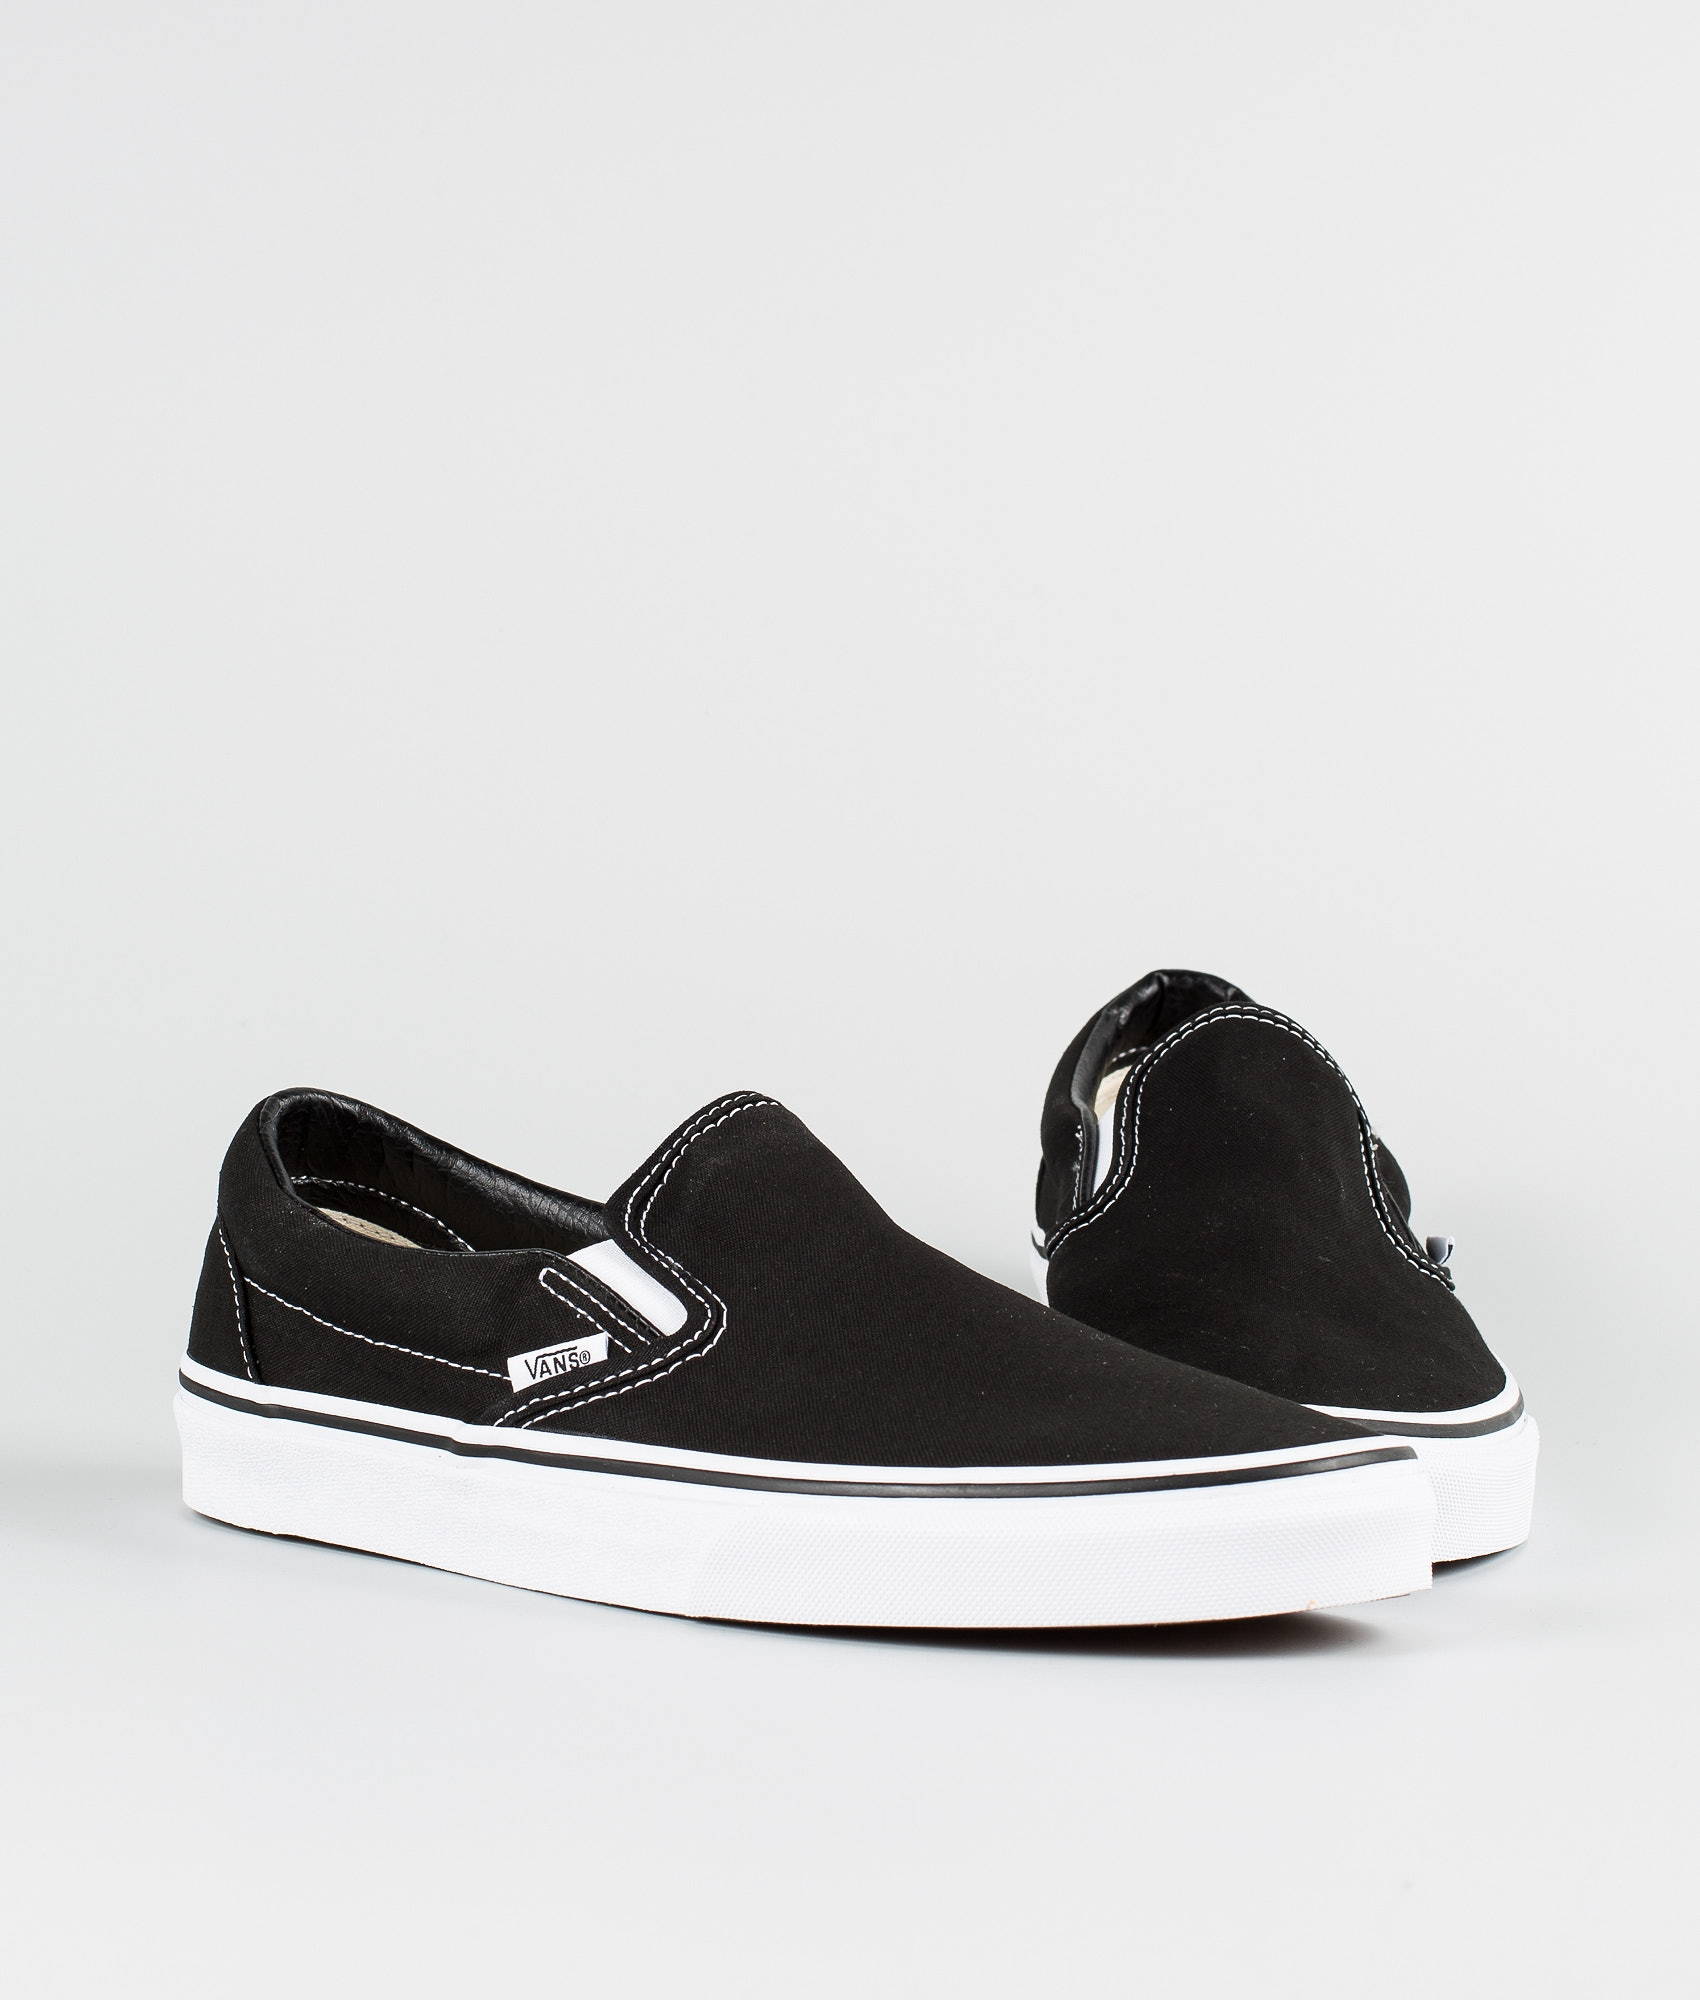 d9ae9bddfcef Vans Classic Slip-On Shoes Black - Ridestore.com